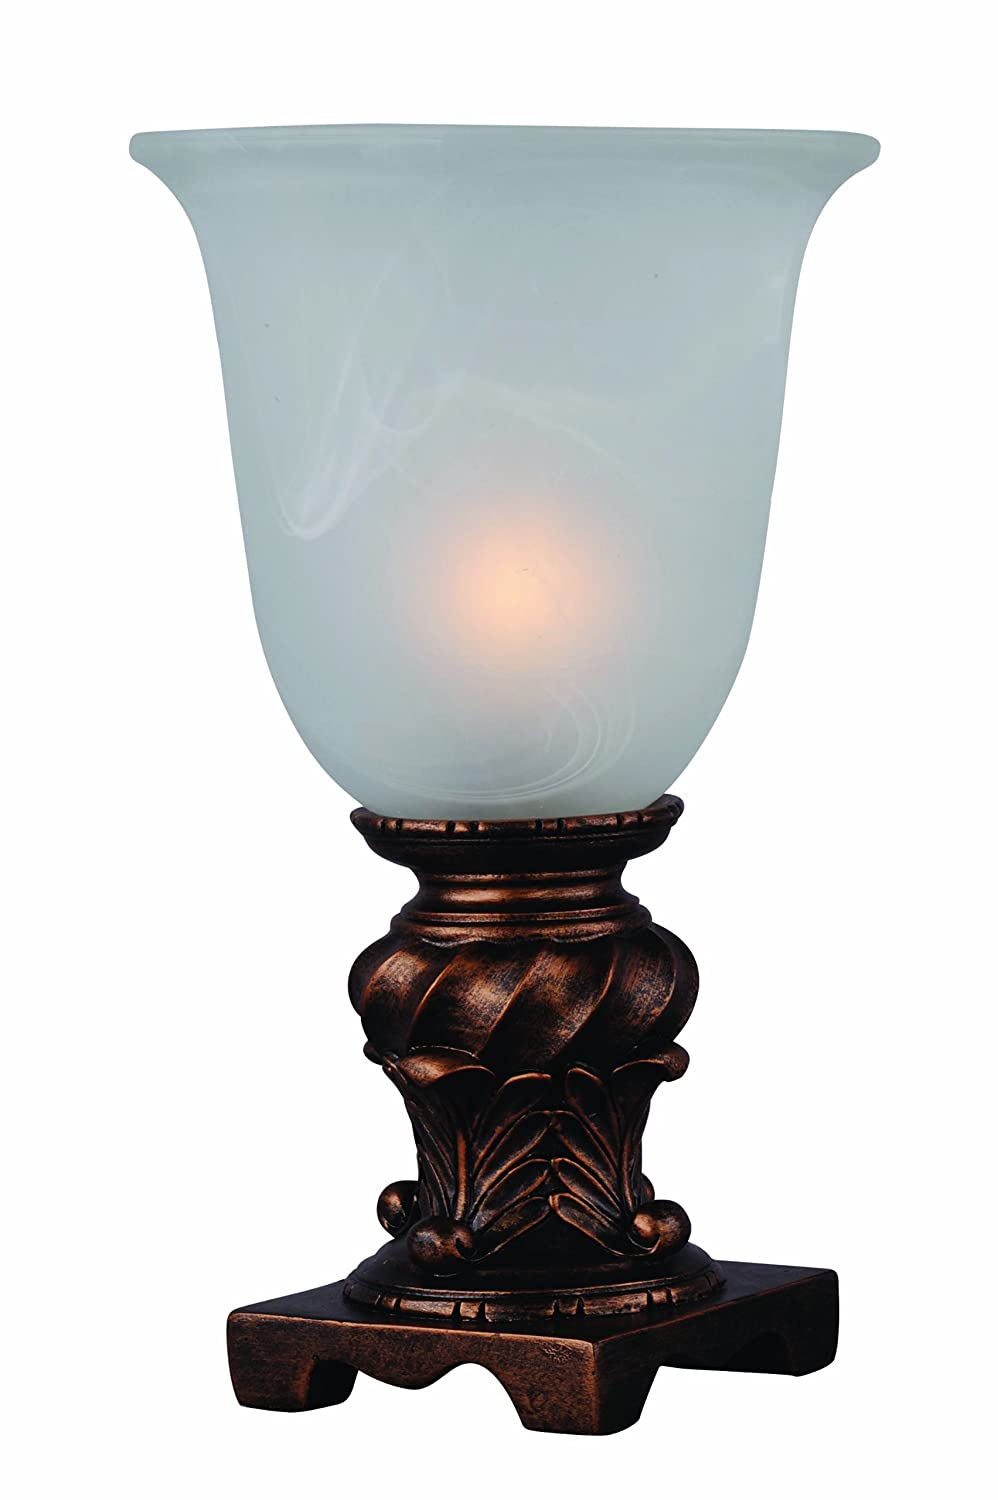 Park Madison Lighting PMA-1031 10-Inch Tall Glass Urn Accent Lamp with Frosted Glass Shade, Antique Bronze Finish